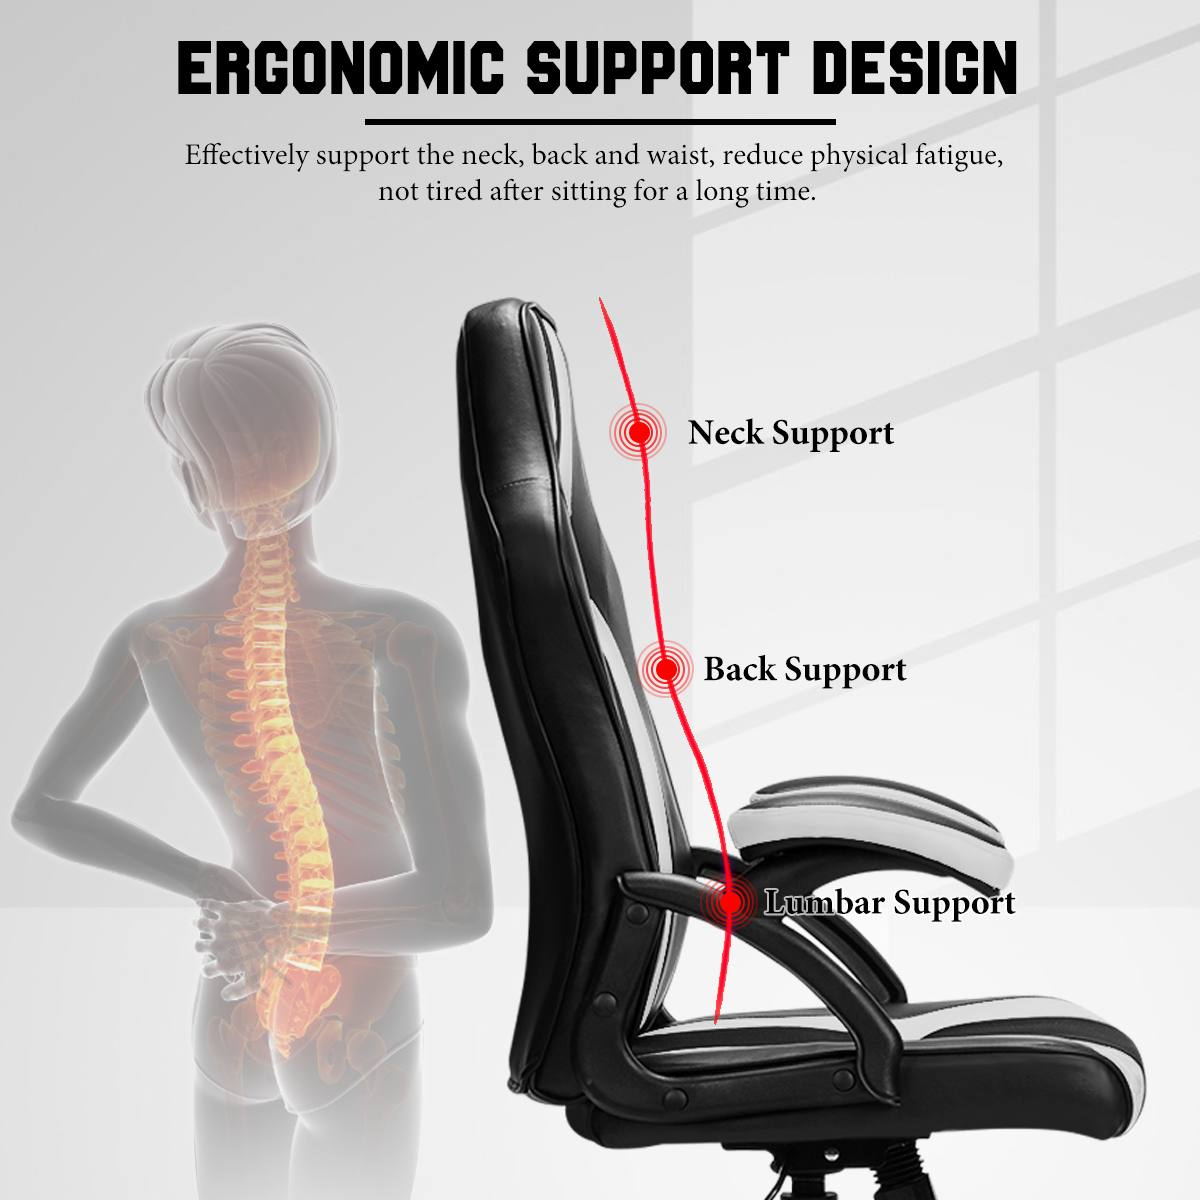 Hc527cf5d125348f992f6068b66ee2806h - Gaming Office Chairs Executive Computer Chair Desk Chair Comfortable Seating Adjustable Swivel Racing Armchair Office Furniture